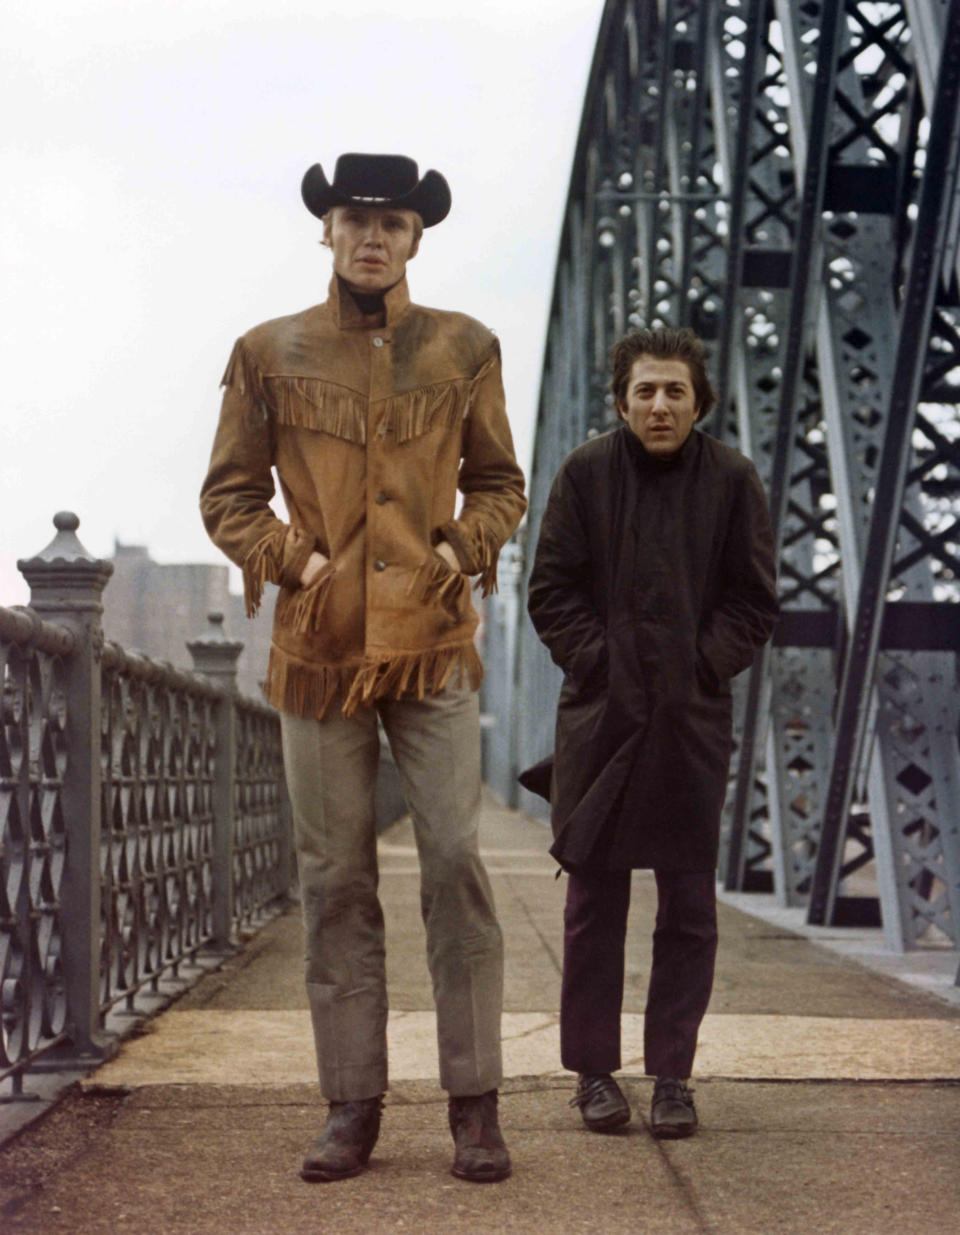 American actors Dustin Hoffman and Jon Voight on the set of Midnight Cowboy, directed by John Schlesinger. (Photo by Photo United Artists/Sunset Boulevard/Corbis via Getty Images)